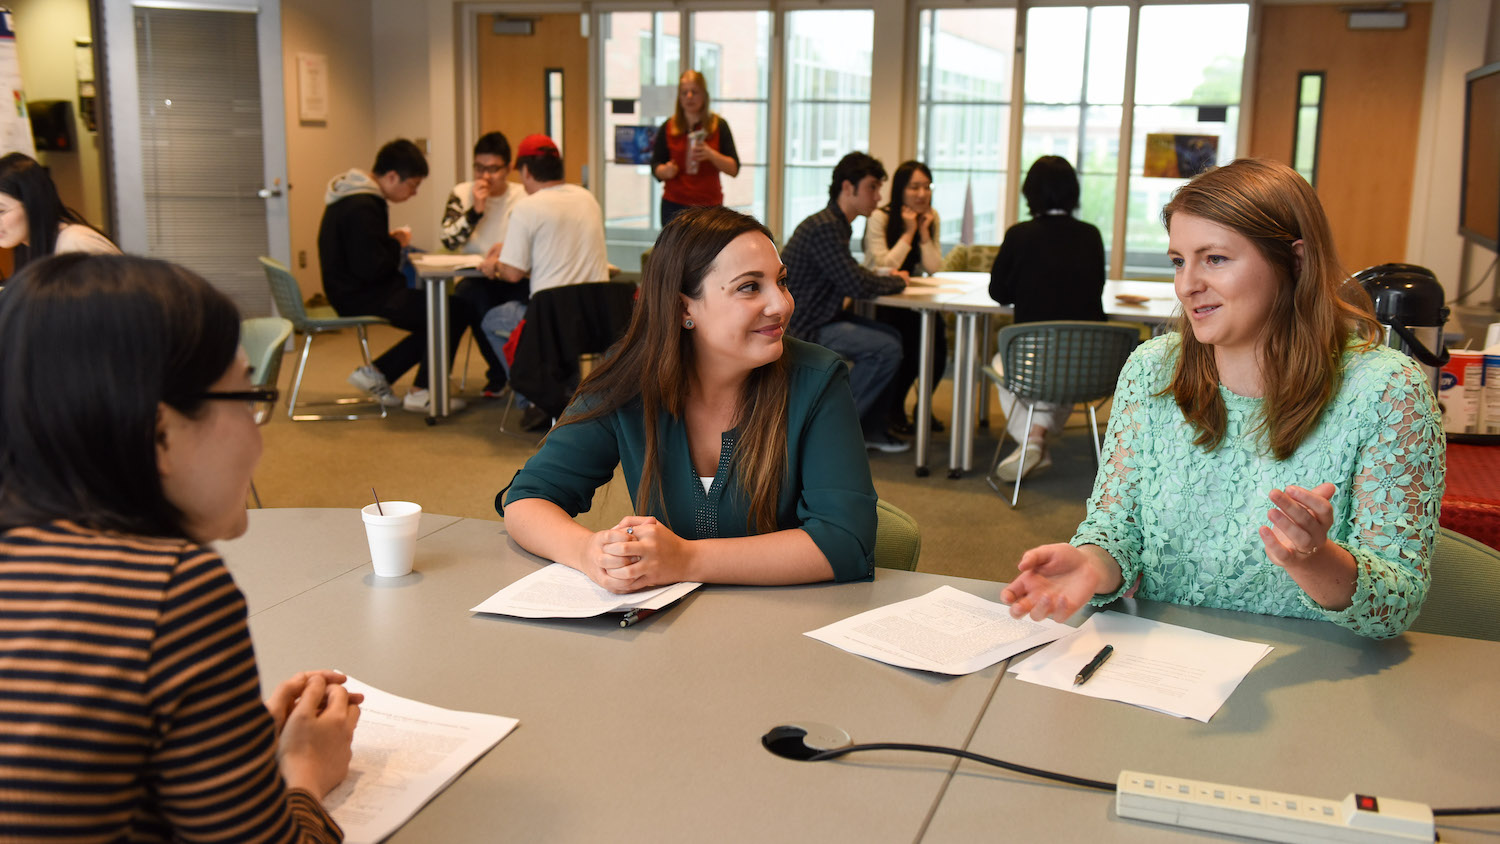 Students and faculty discuss research around a table in a common room